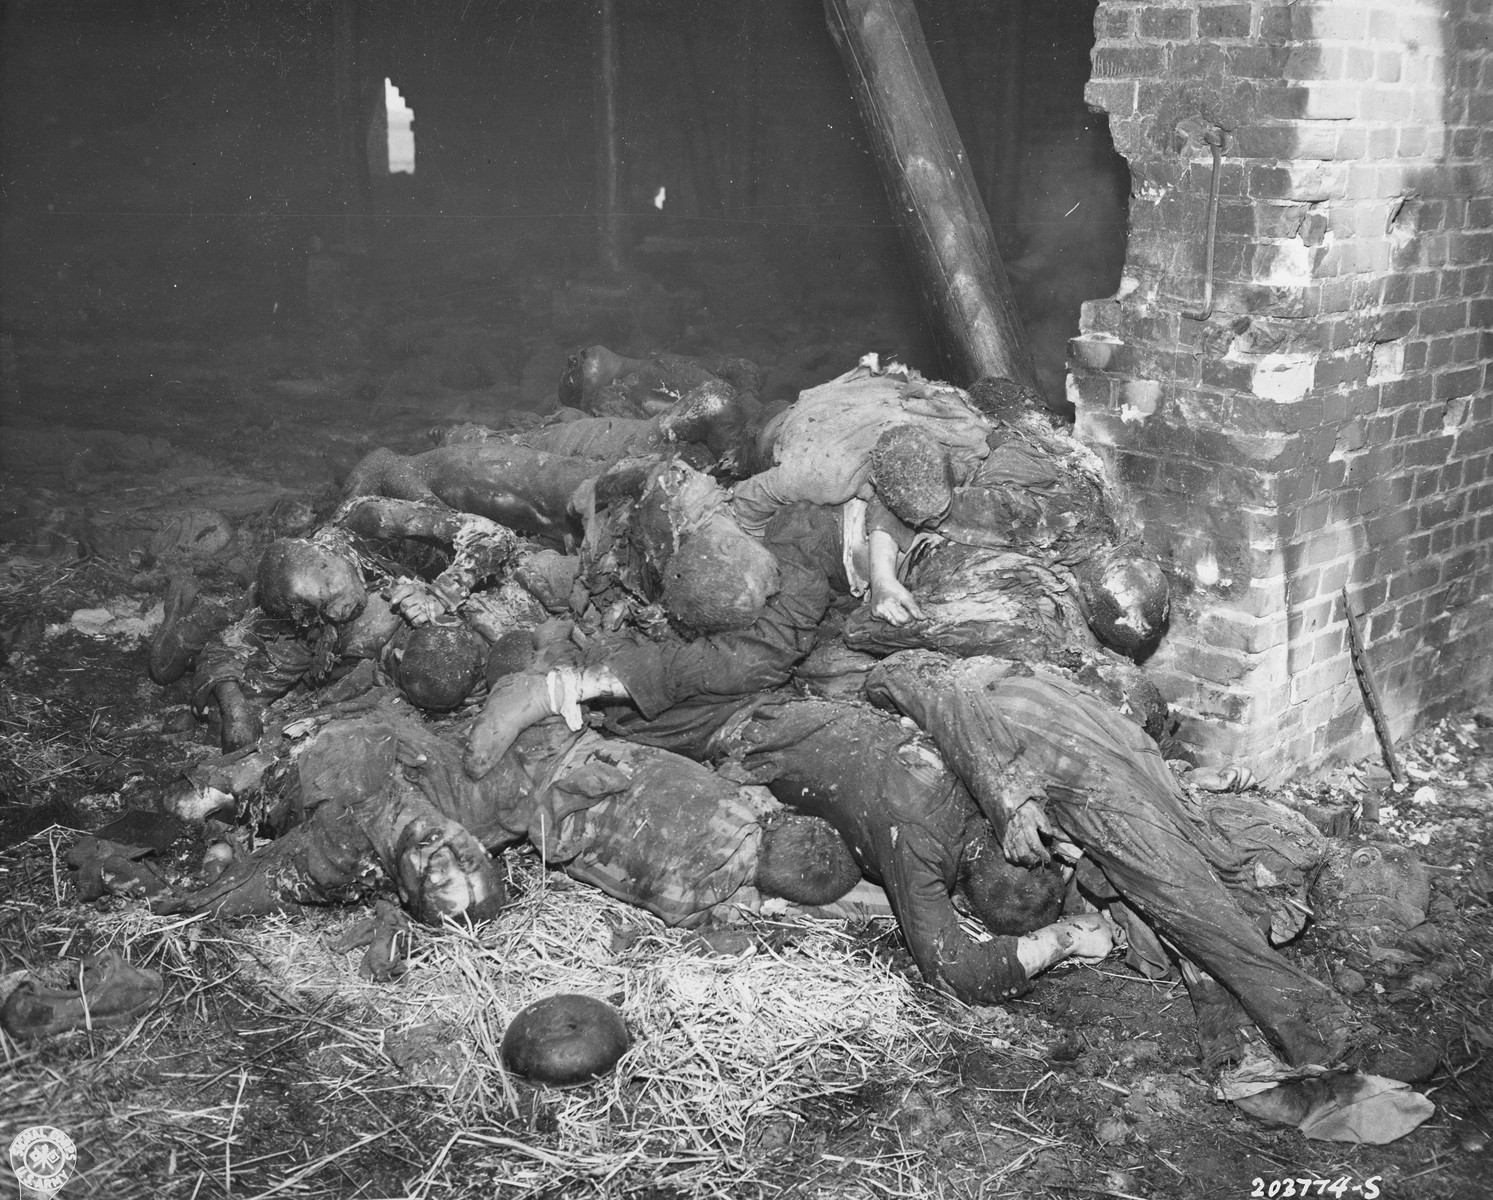 The charred corpses of prisoners burned alive by the SS in a barn outside of Gardelegen.